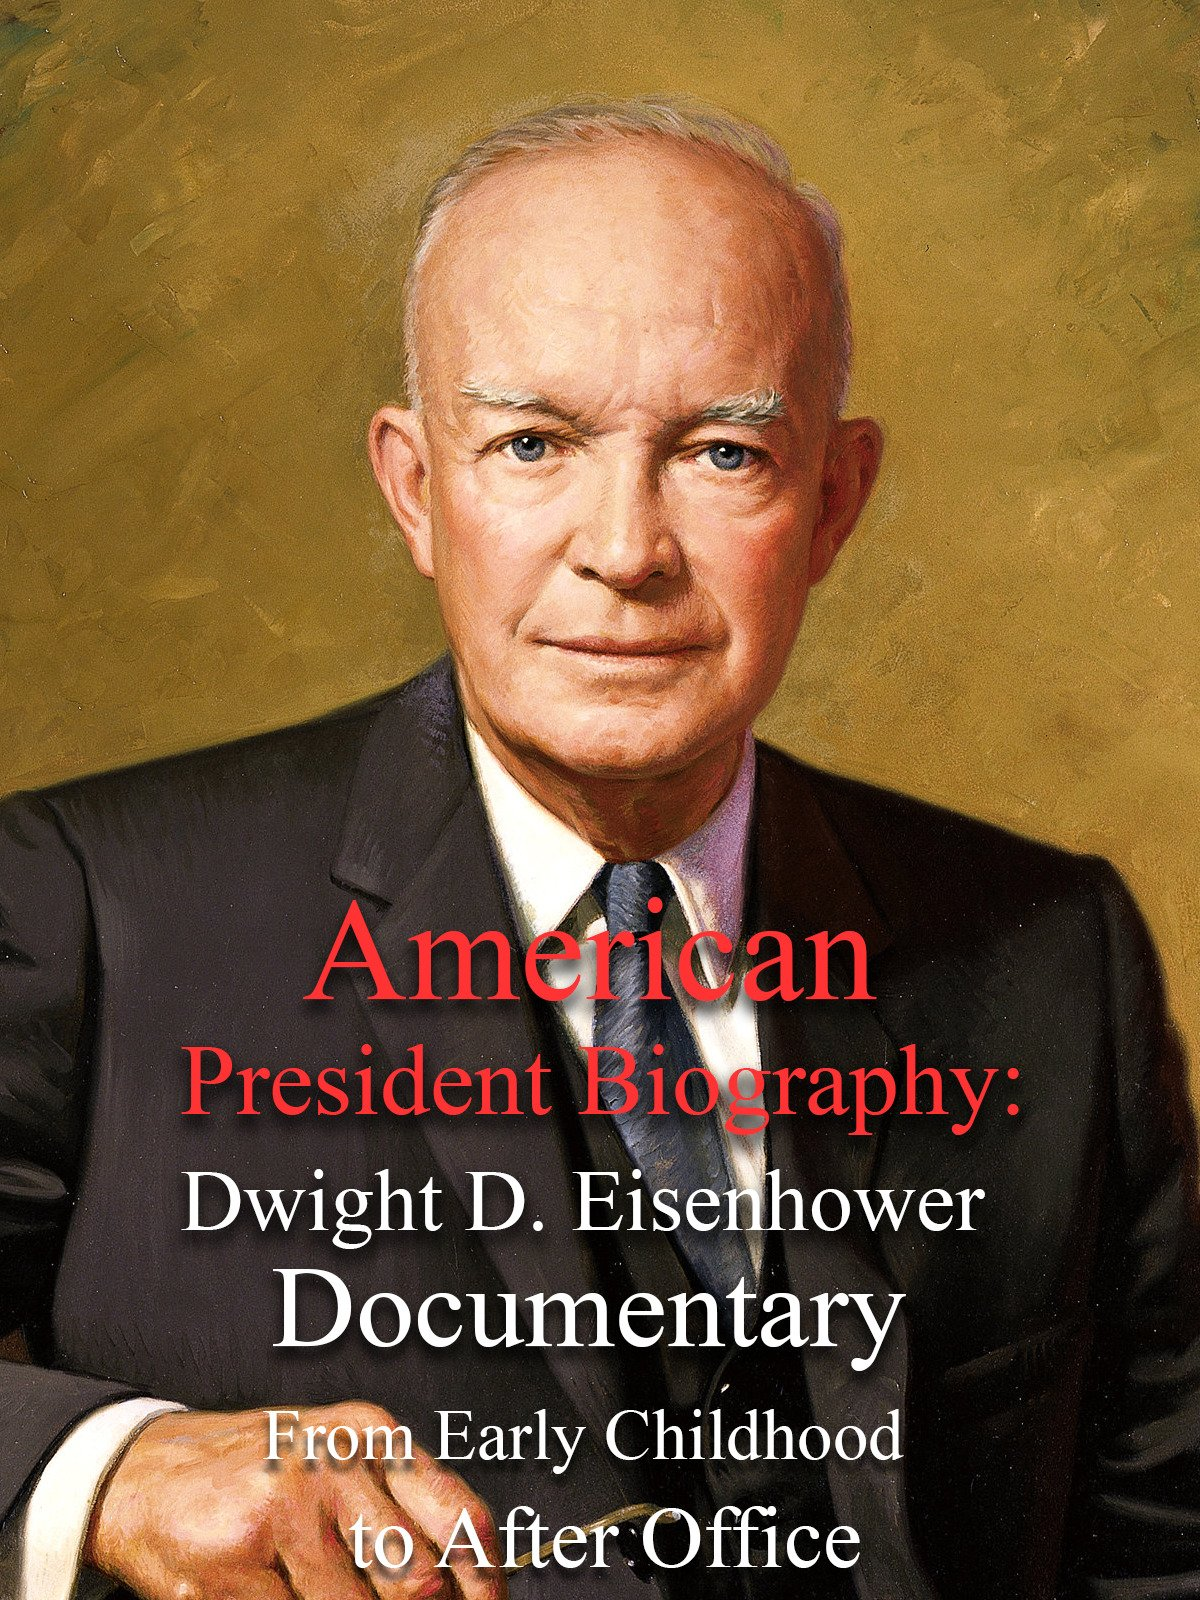 American President Biography: Dwight D. Eisenhower Documentary From Early Childhood to After Office